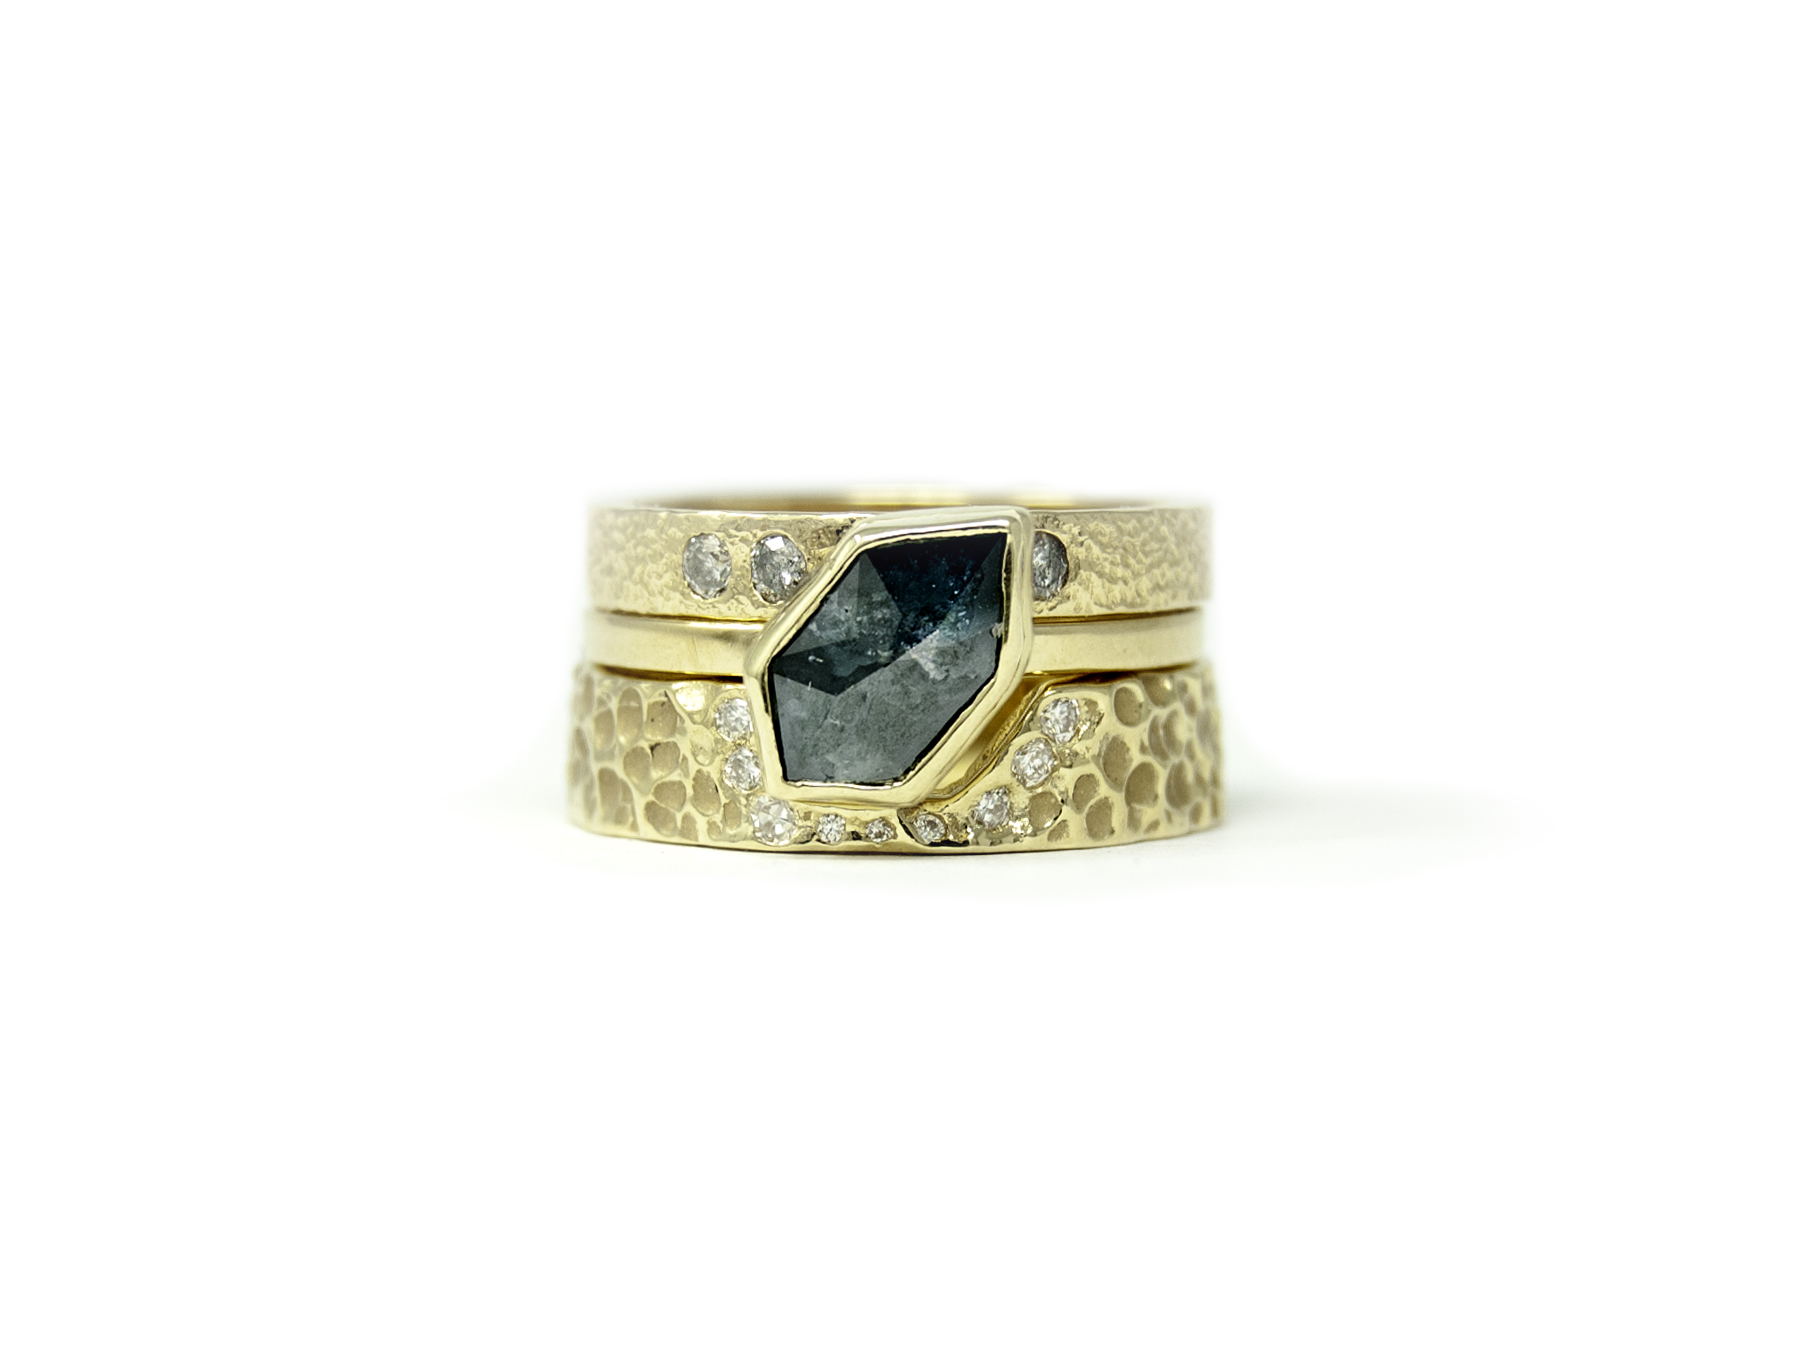 Two wedding bands is 2019's hottest trend- and we are not complaining about it in this recent wedding set featuring a blue diamond!